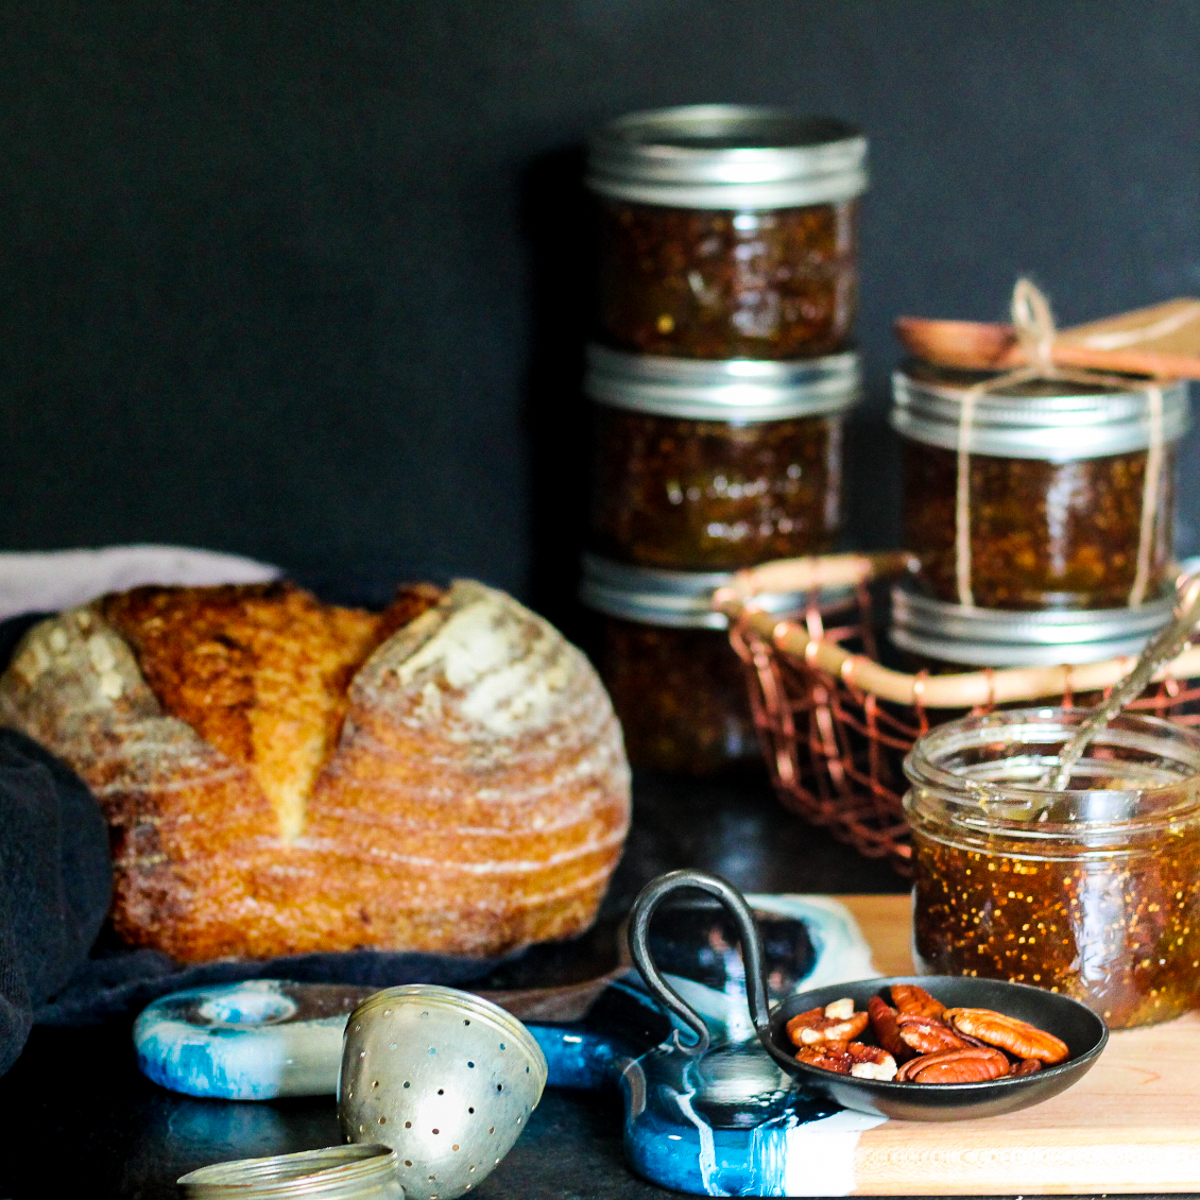 Jars of fig jam alongside a loaf of bread and pecans on a blue and brown charcuterie board